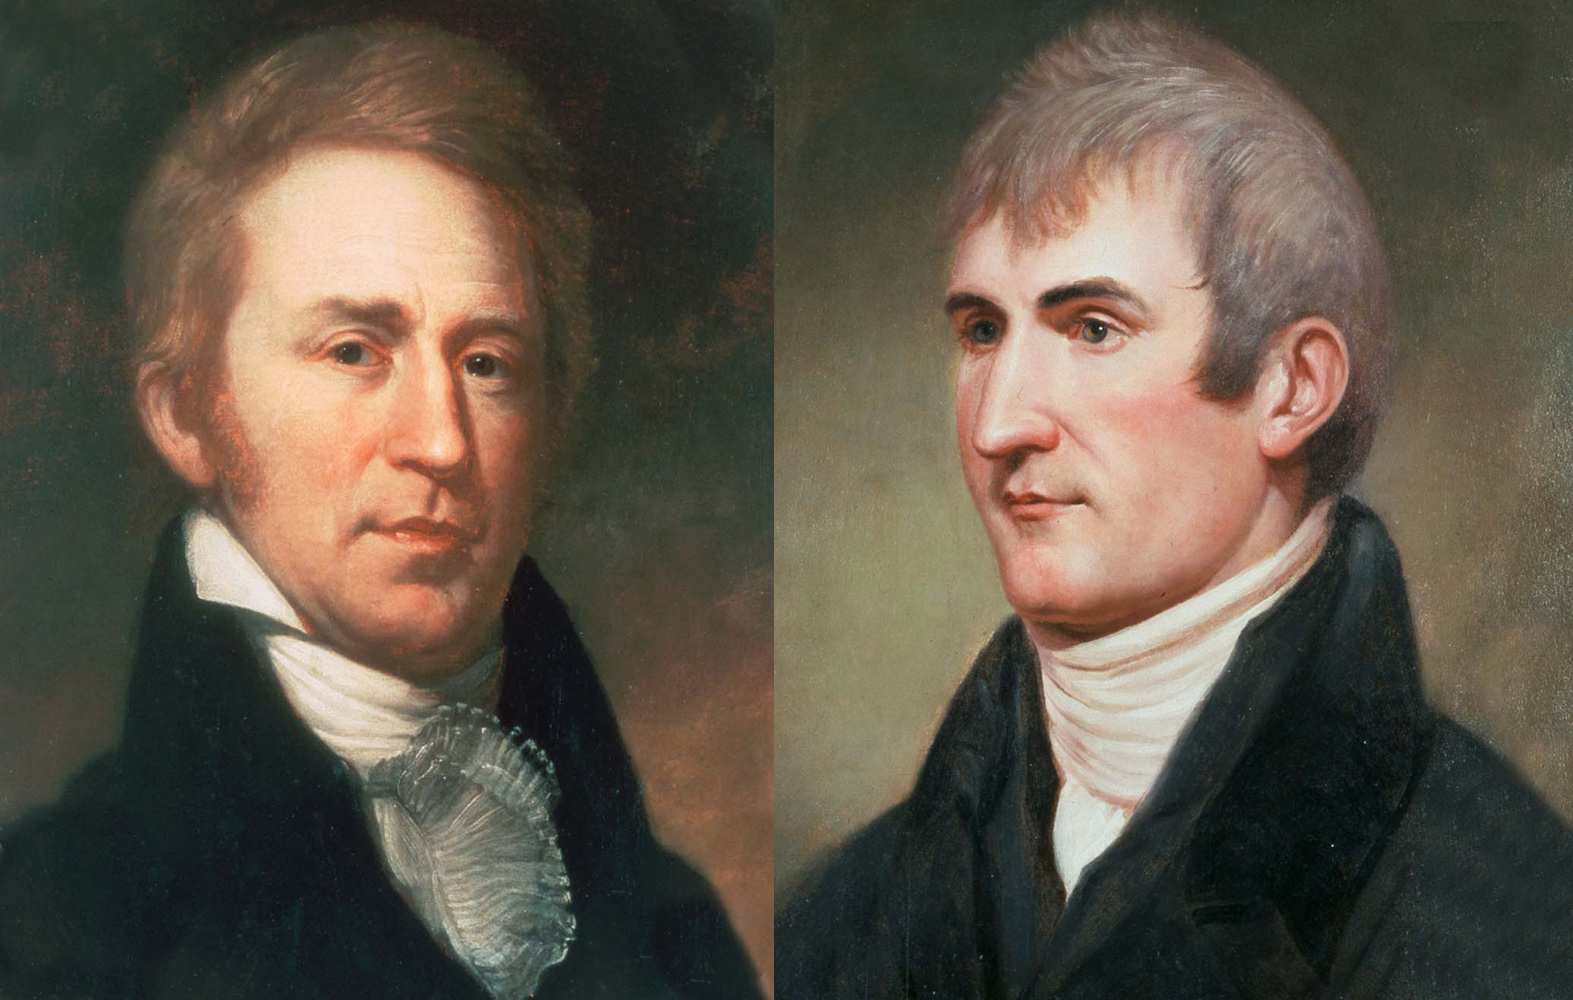 HBO announces new Lewis & Clark mini-series